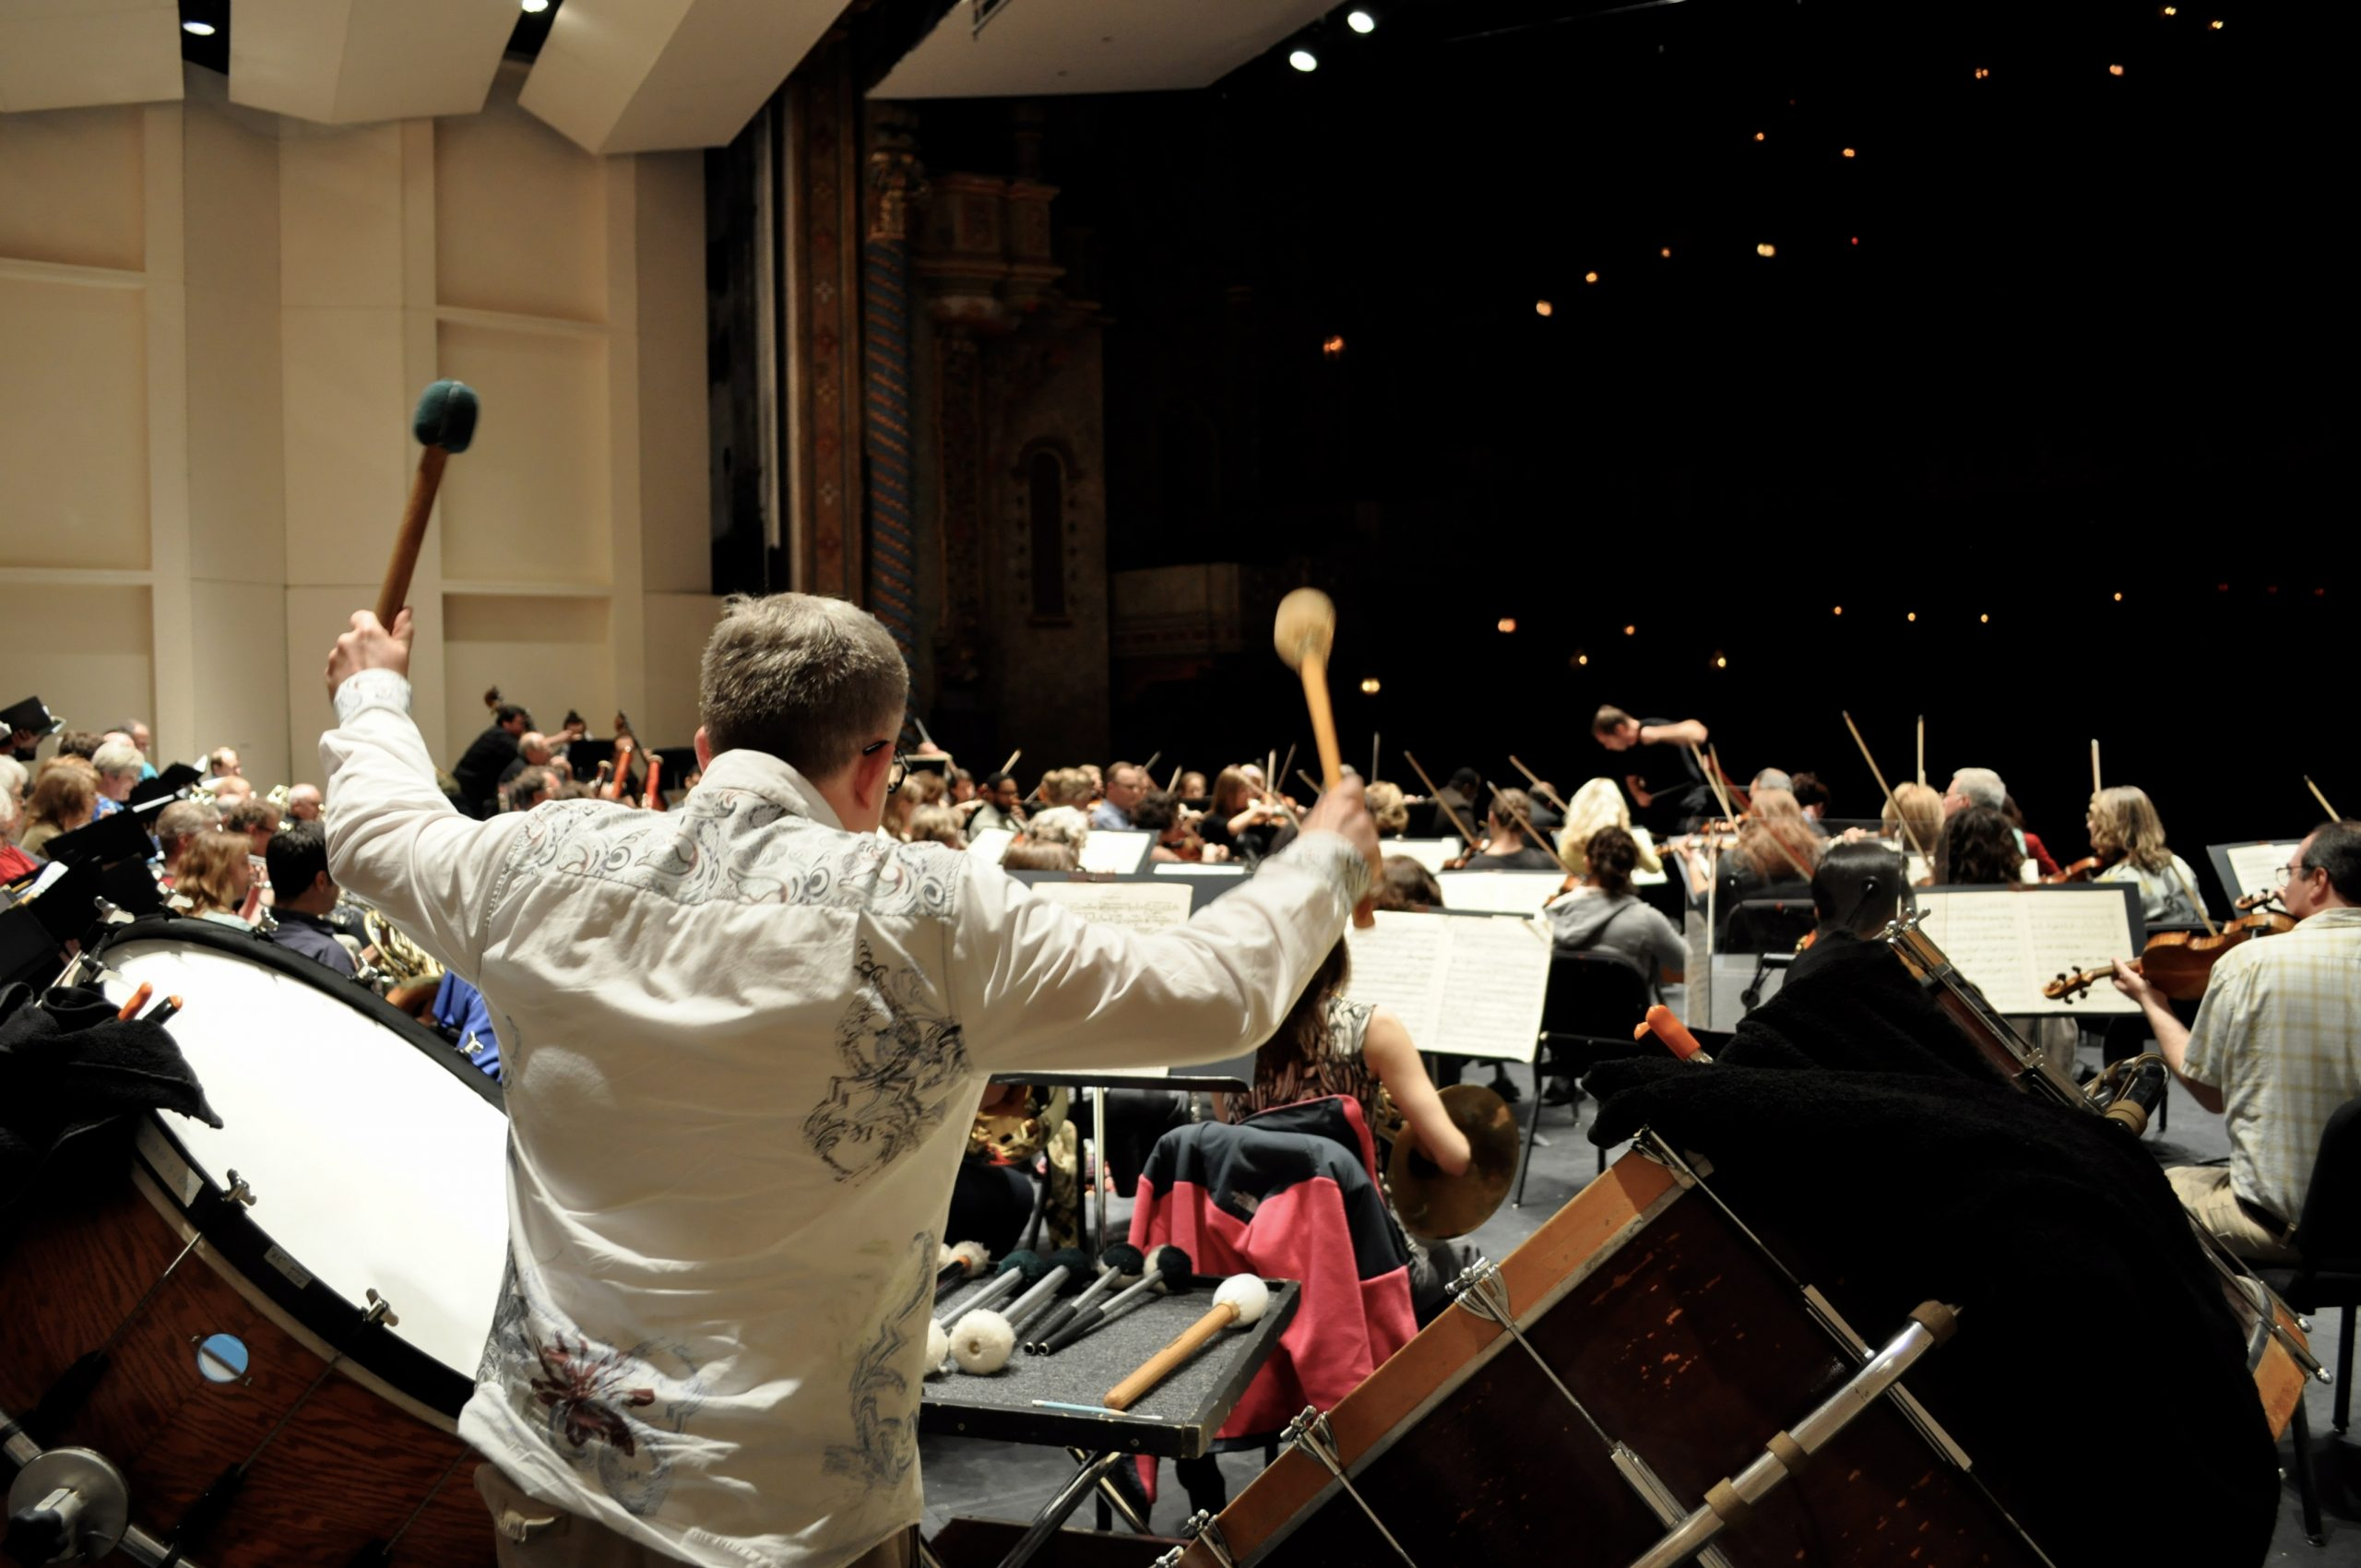 """The visual performance of Verdi's """"Requiem"""" will prove to be almost as stunning as the audio. More than 30 bows punctuate rhythm, and the bass drummer carries the most dramatic moments with elaborate (but controlled) movements. Photo by Iris Dimmick."""